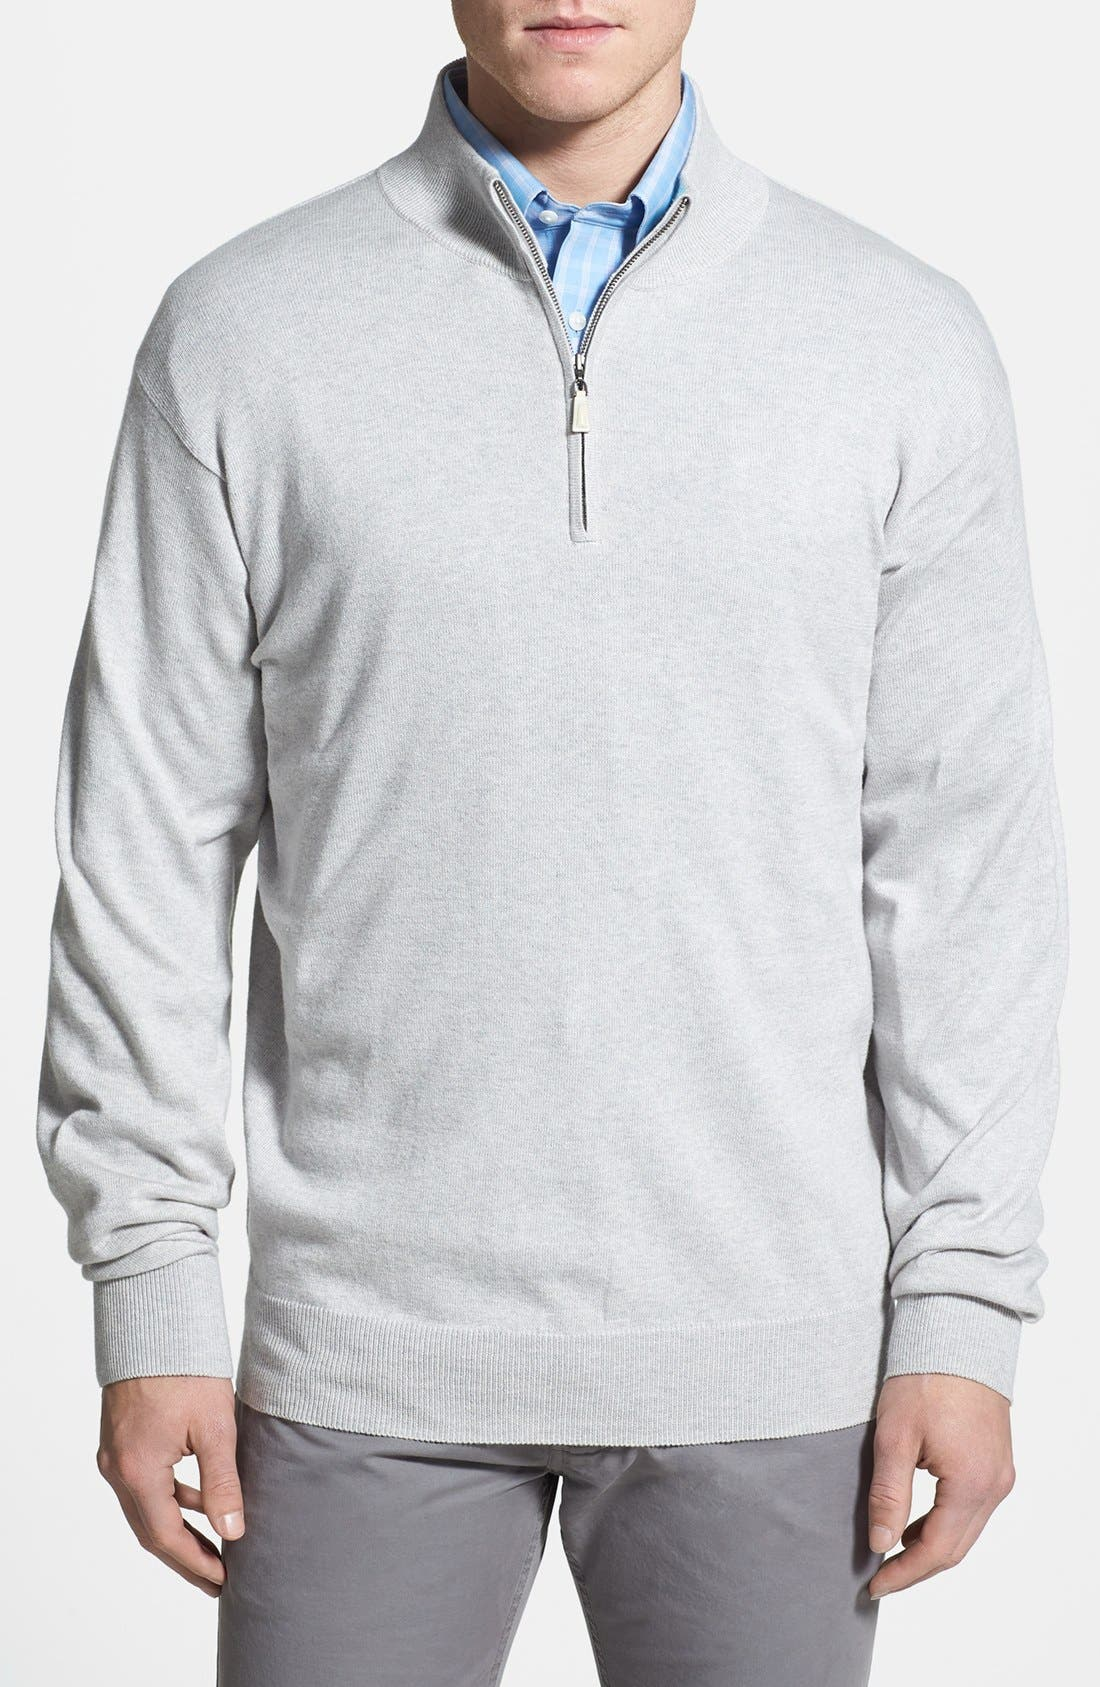 Alternate Image 1 Selected - Peter Millar Cotton & Cashmere Quarter Zip Sweater